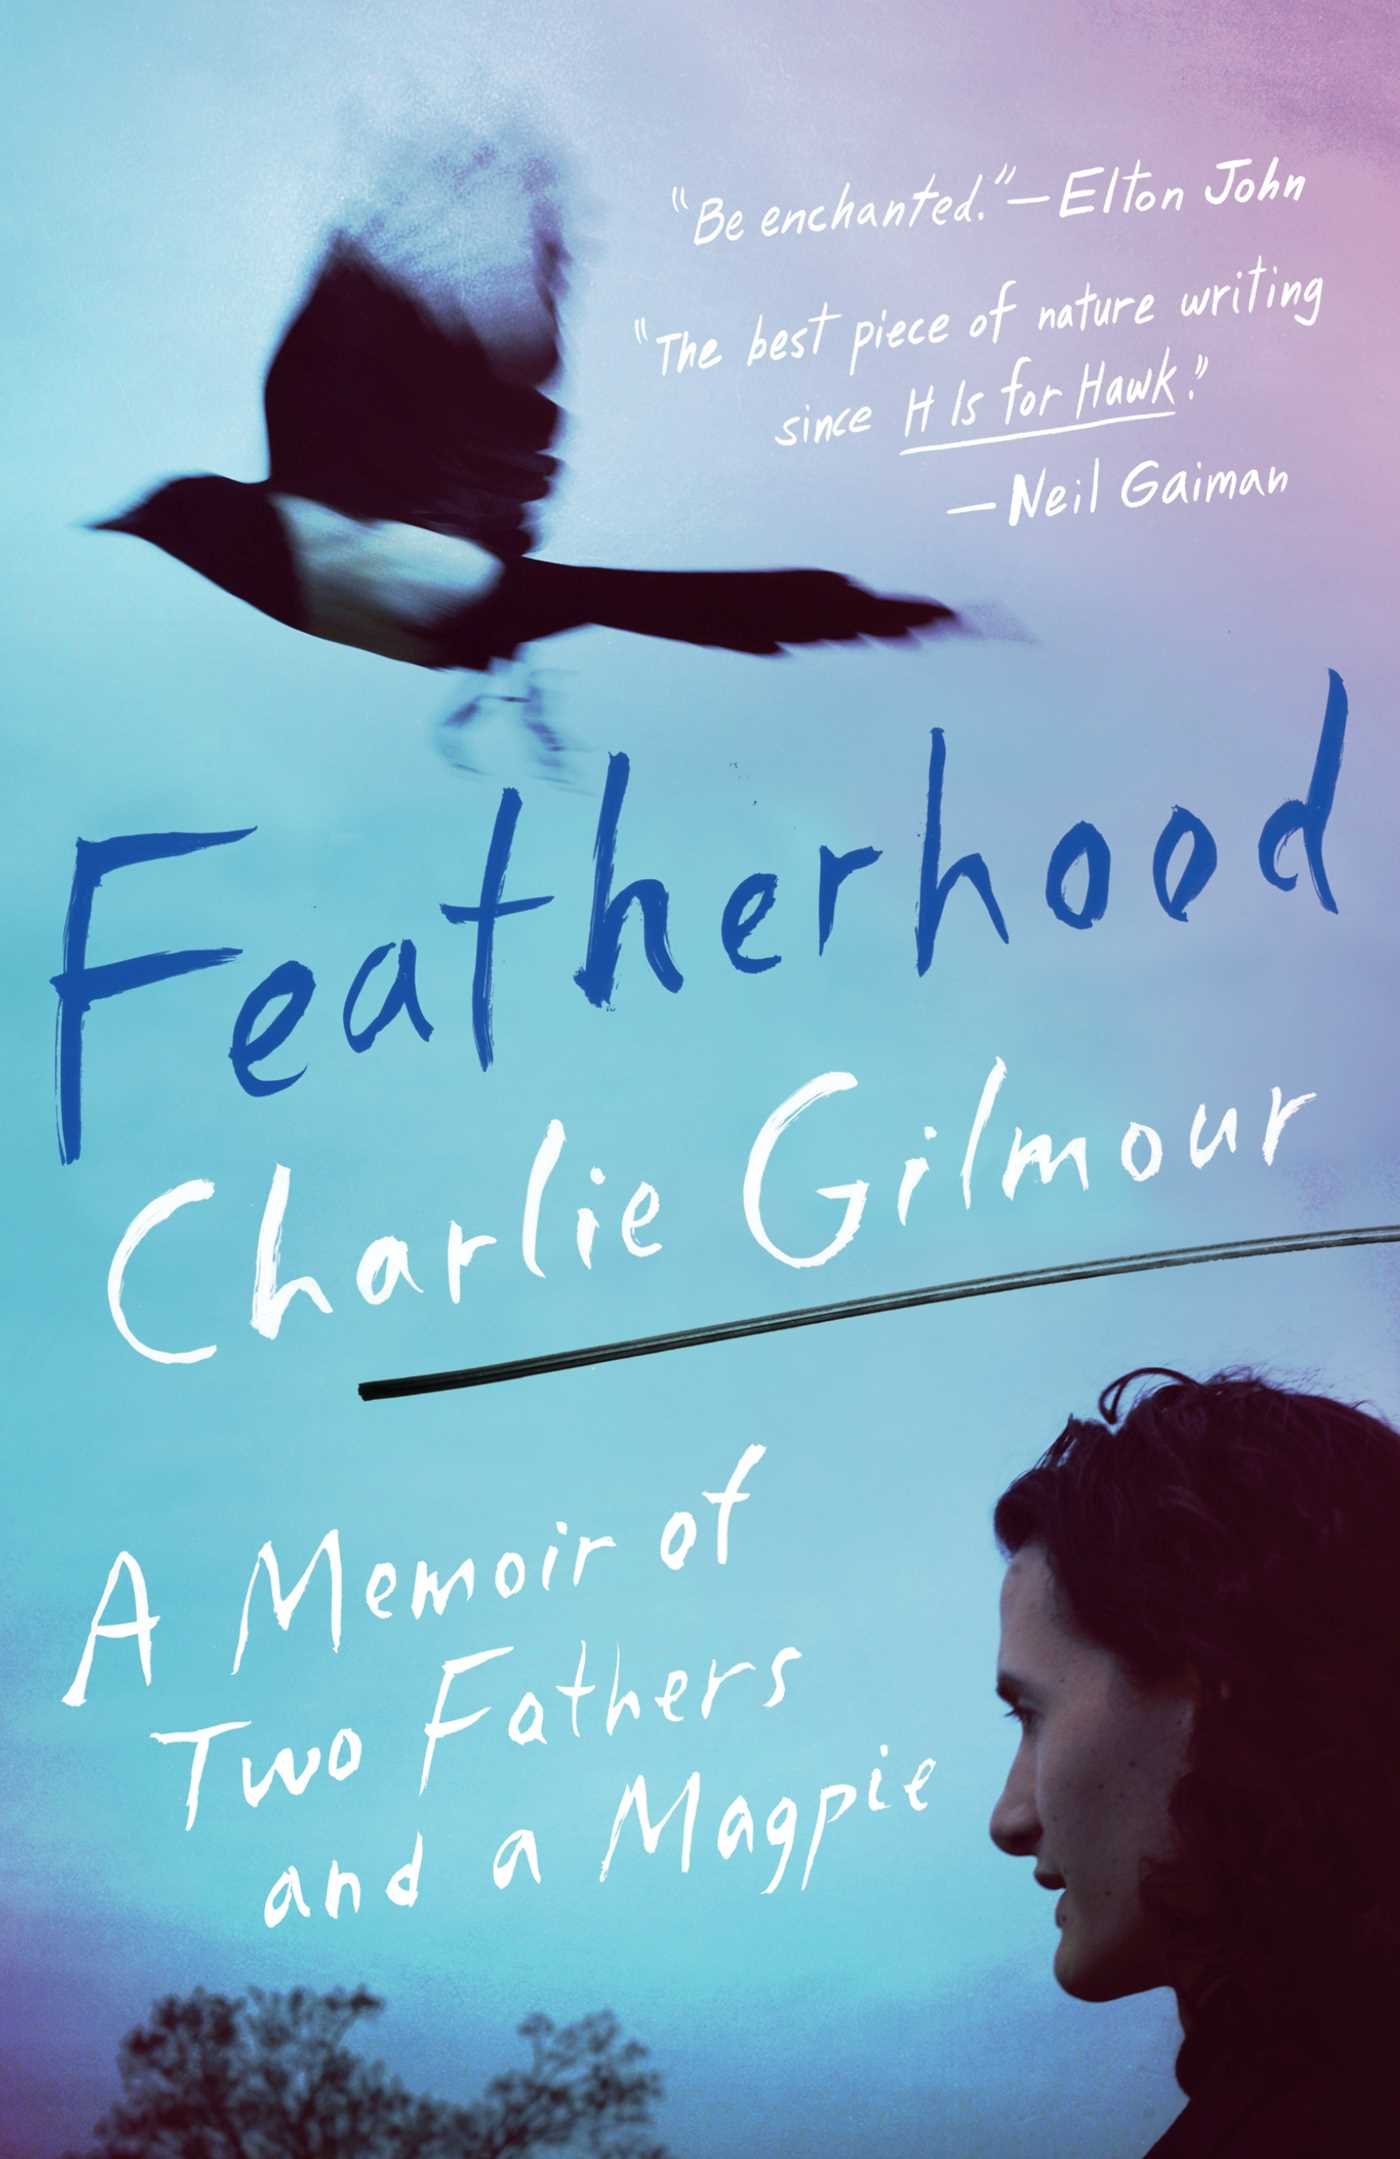 Featherhood: A Memoir of Two Fathers and a Magpie